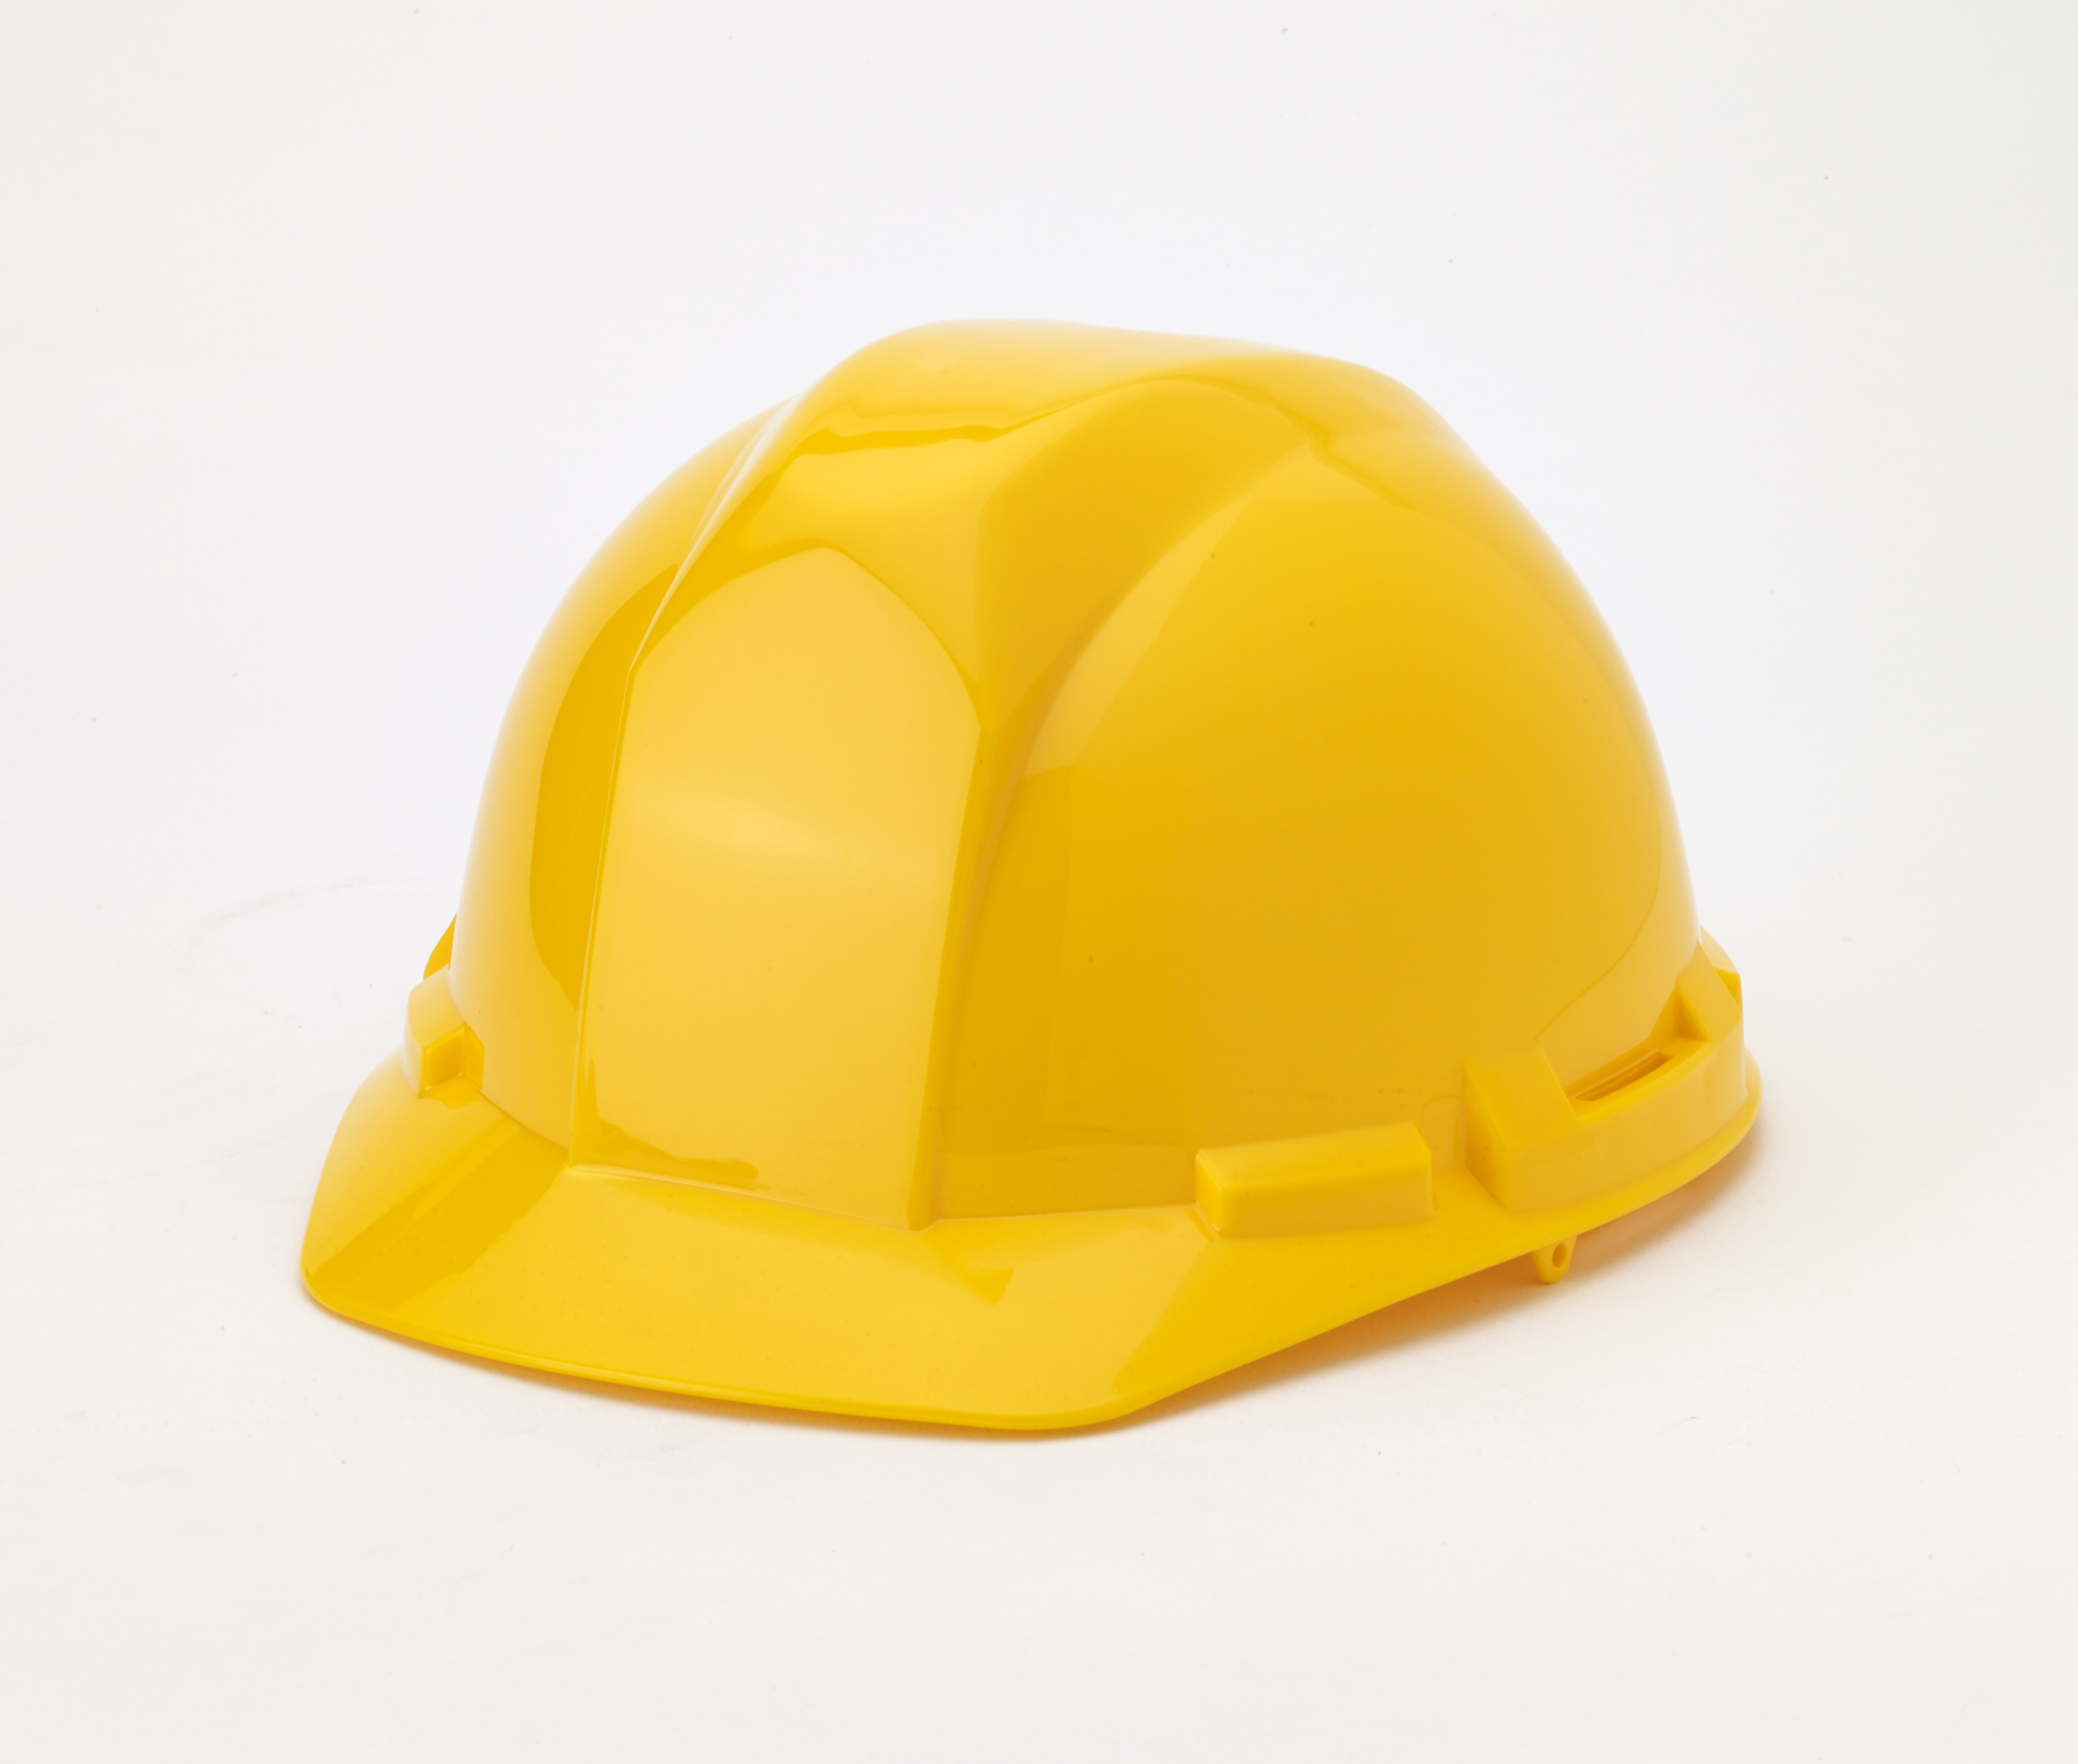 M50200-41, Polyethylene 4-Point Ratchet Suspension Hard Hat, Yellow, Mutual Industries